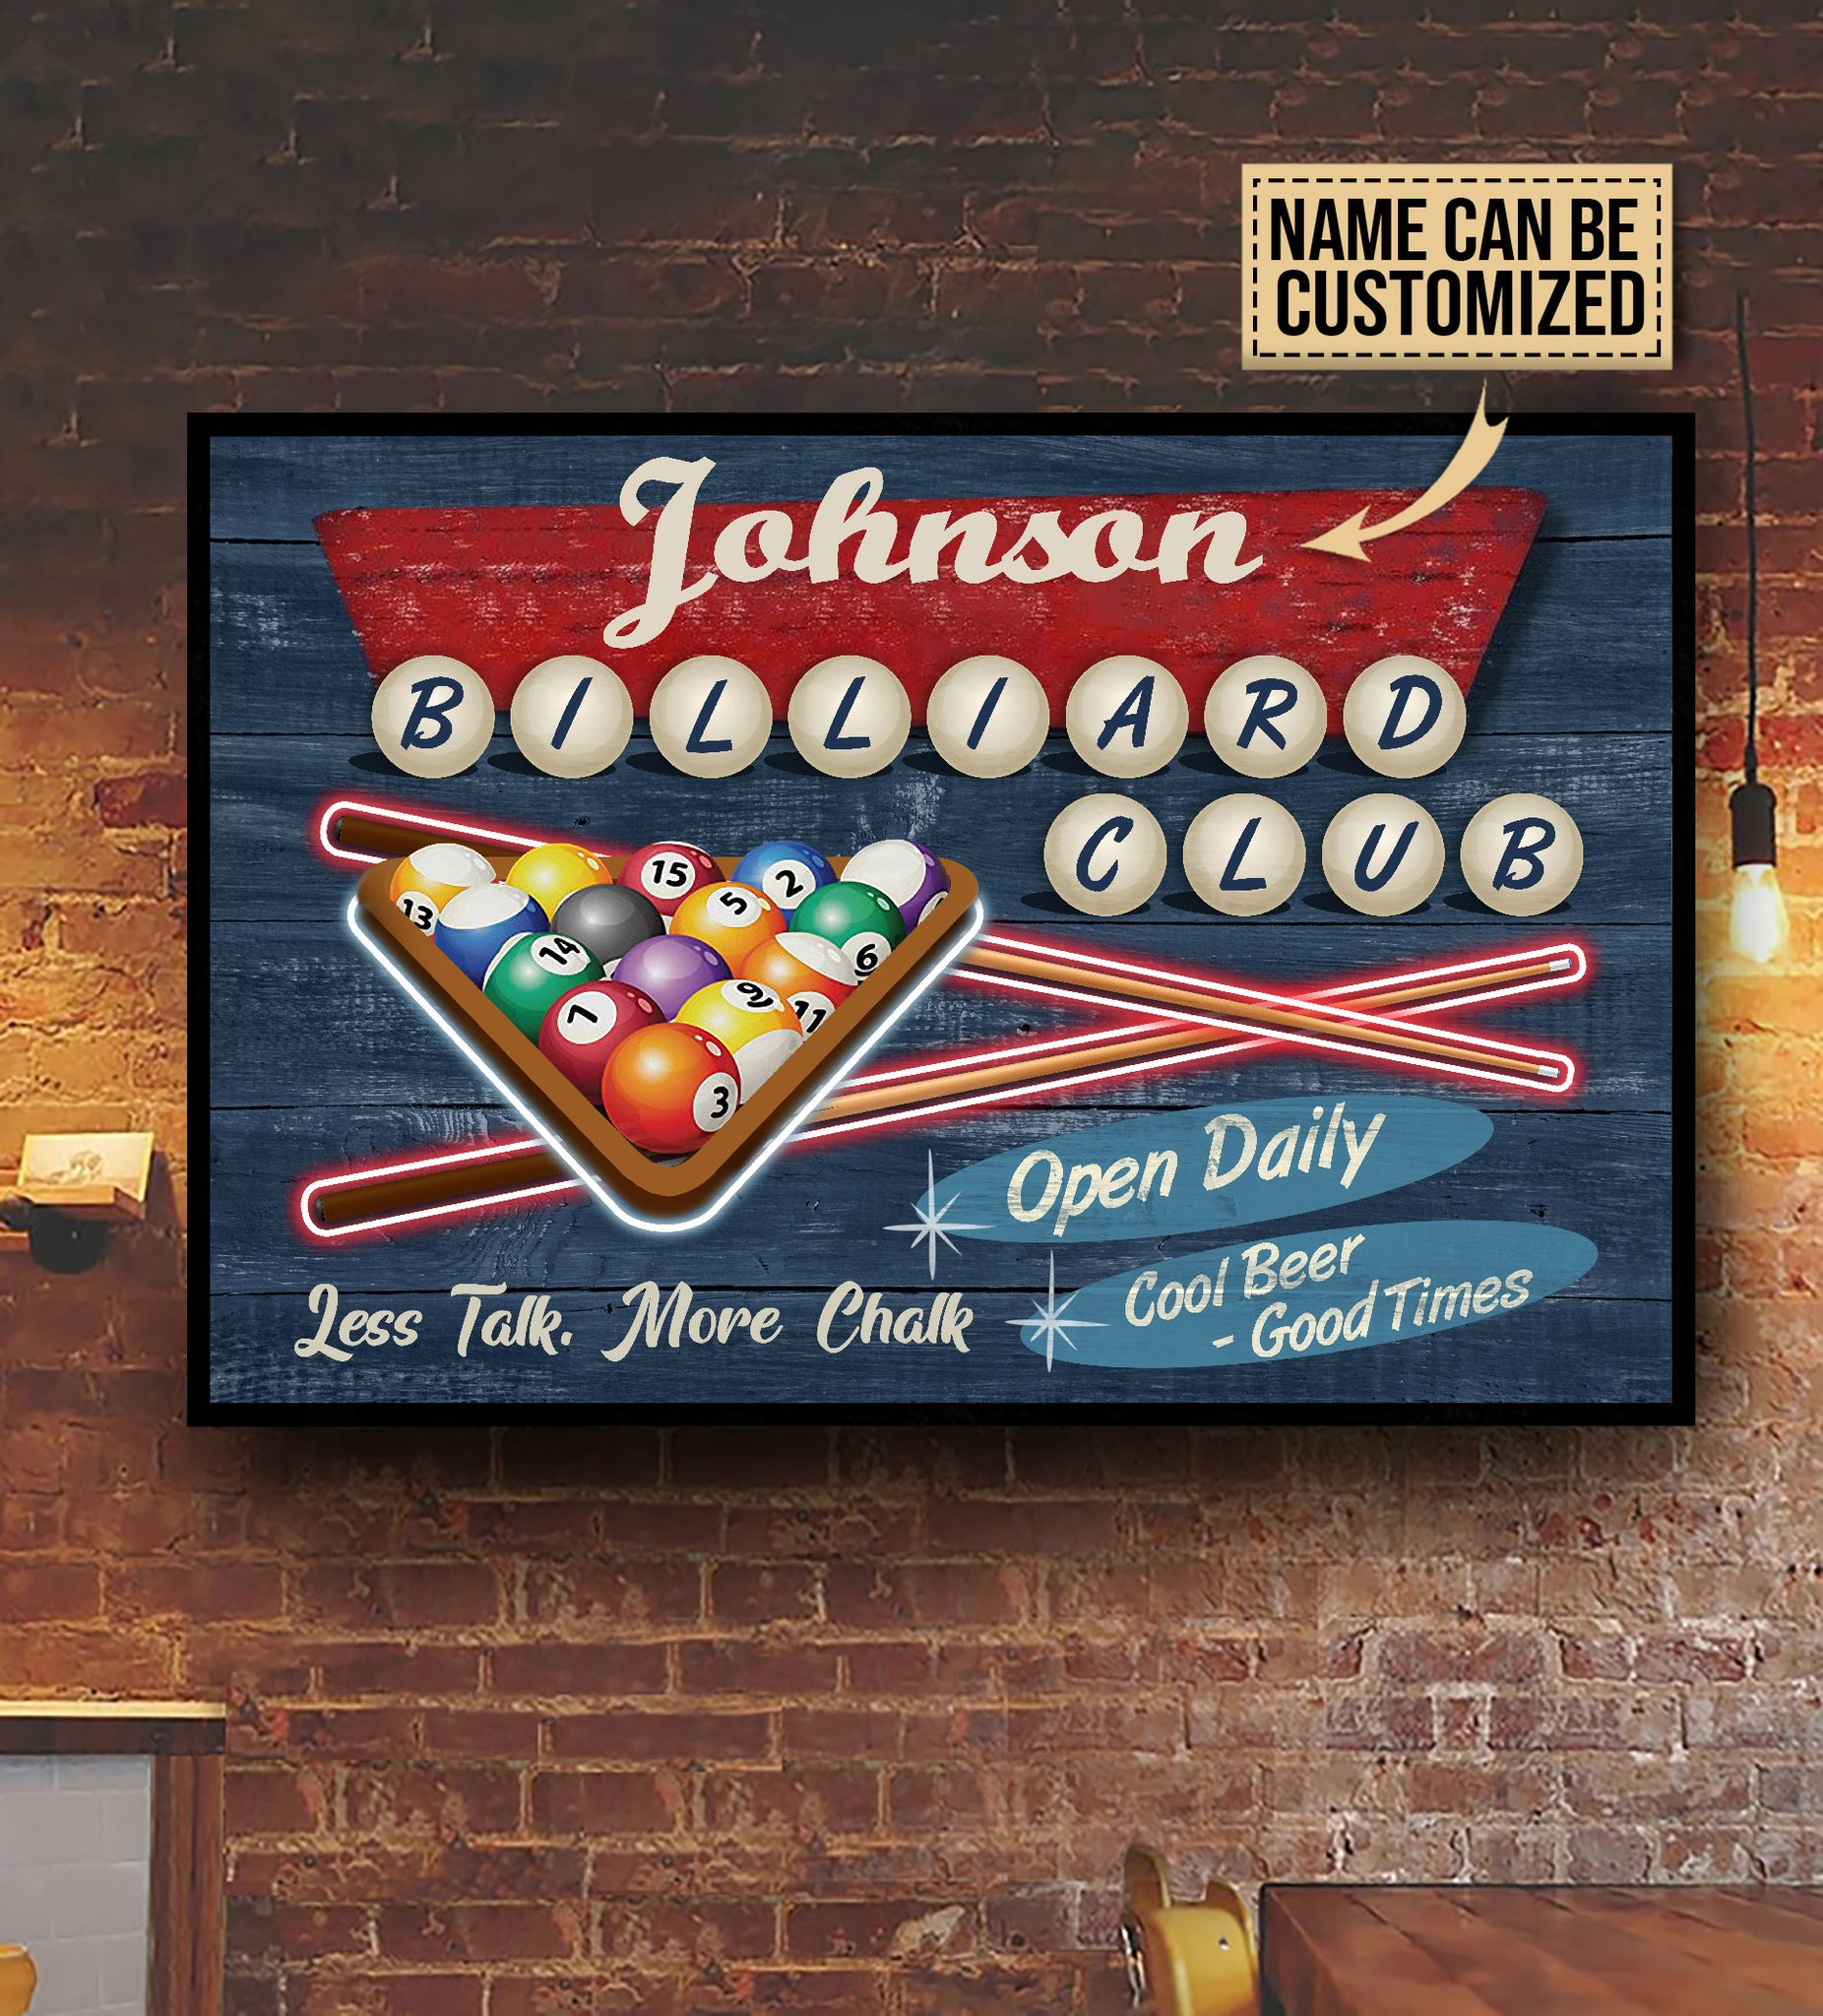 custom your name billiard club cool beer good times poster 4